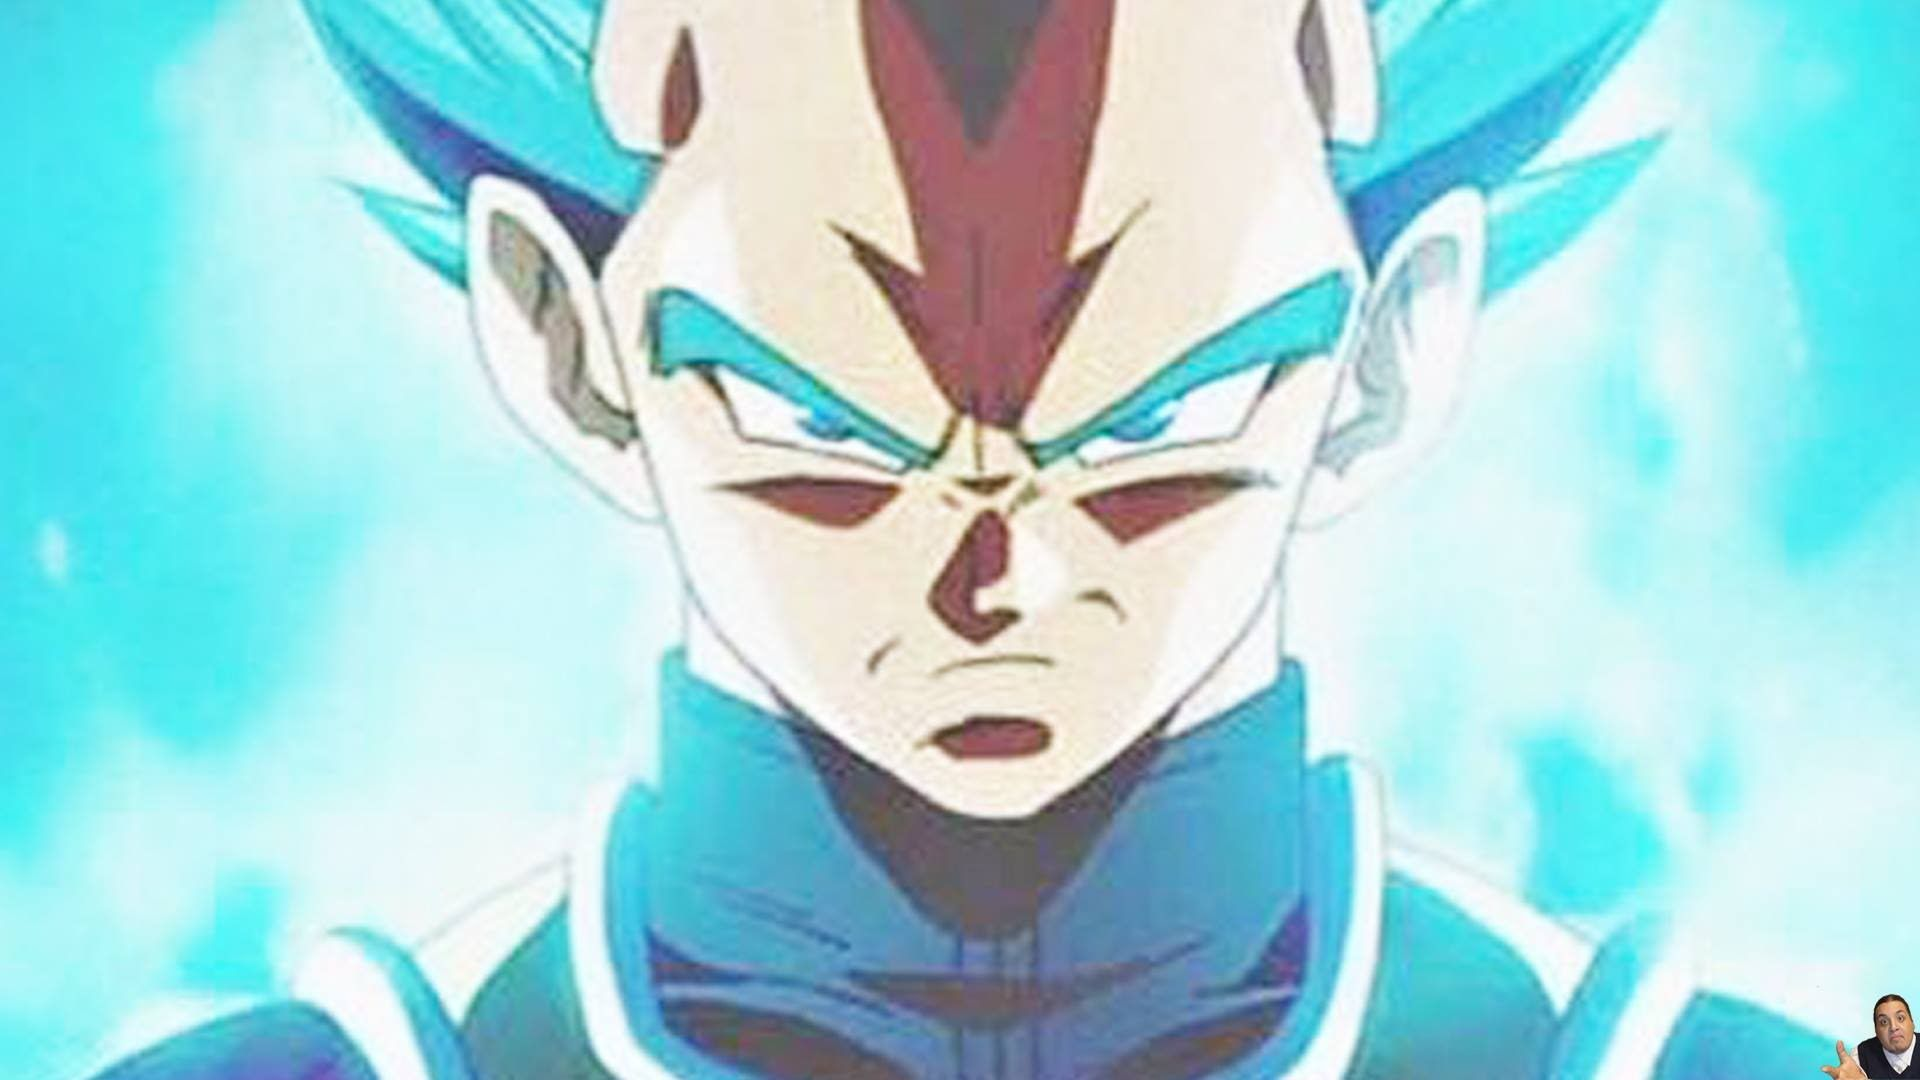 Dragon Ball Super Vegeta Wallpaper Hd Gambarku